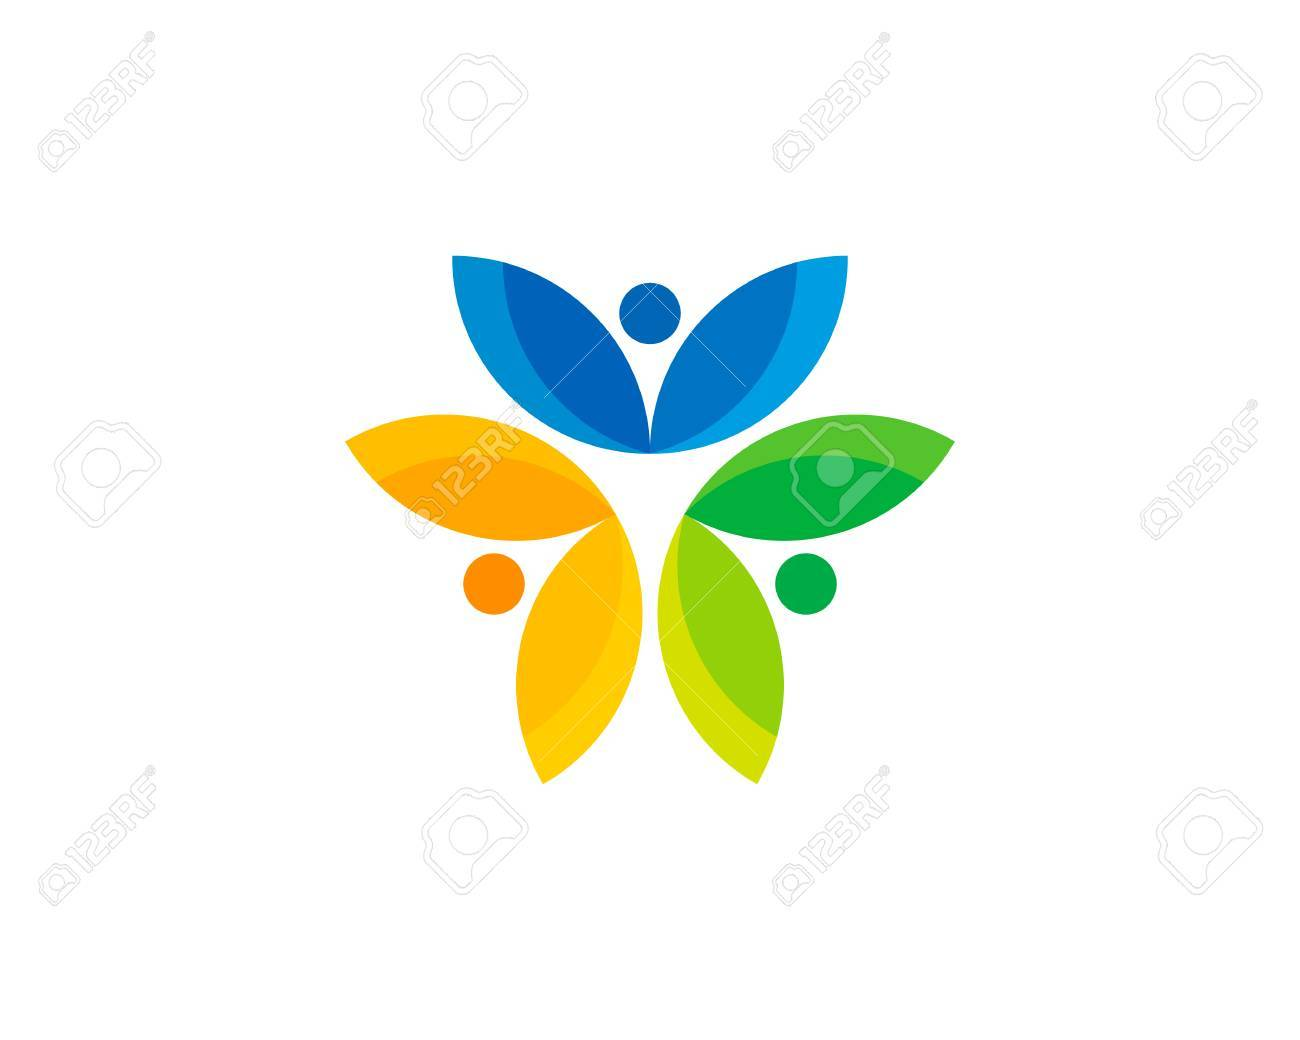 Wellness icon  Wellness Icon Logo Design Element Royalty Free Cliparts, Vectors ...